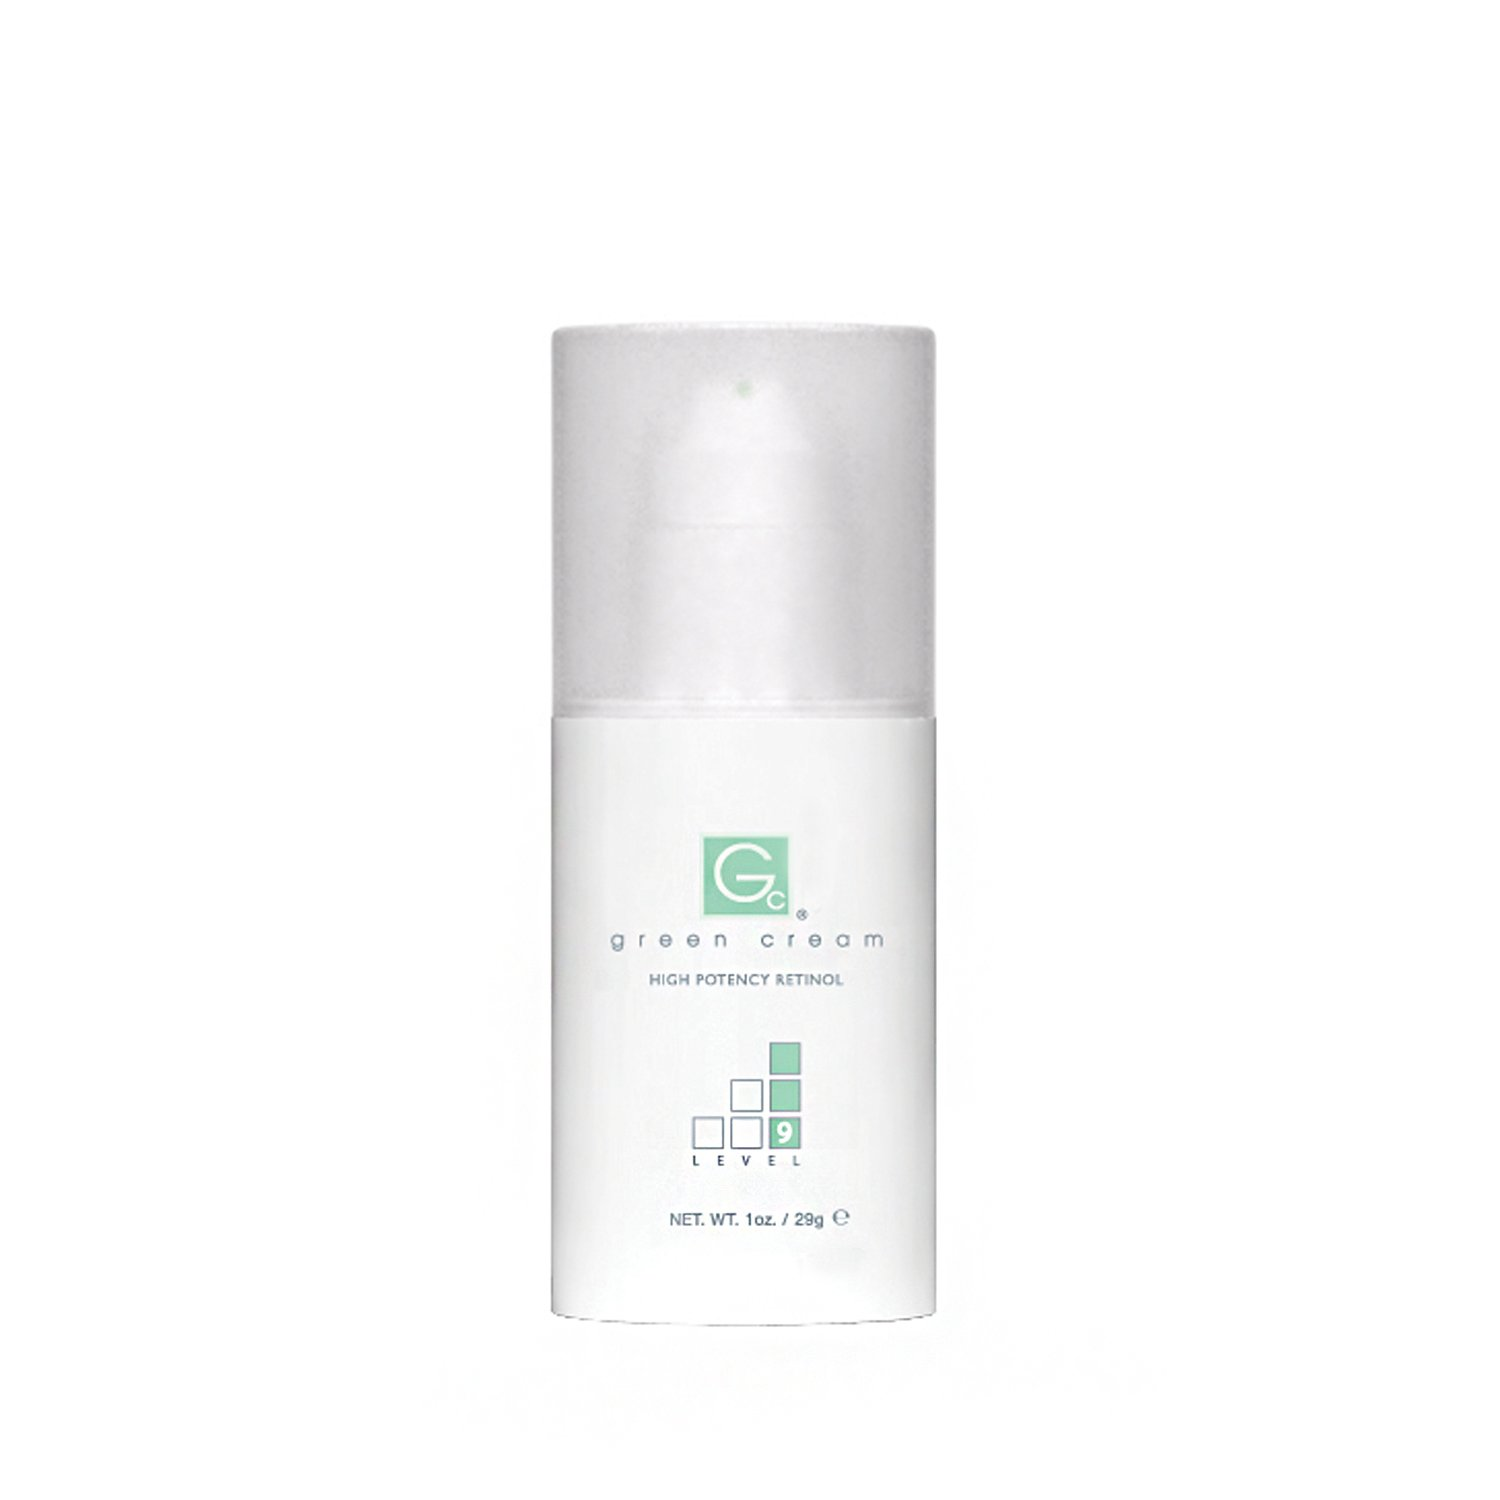 Green Cream   High Potency Retinol   Level 9   1oz. Airless Pump by Advanced Skin Technology